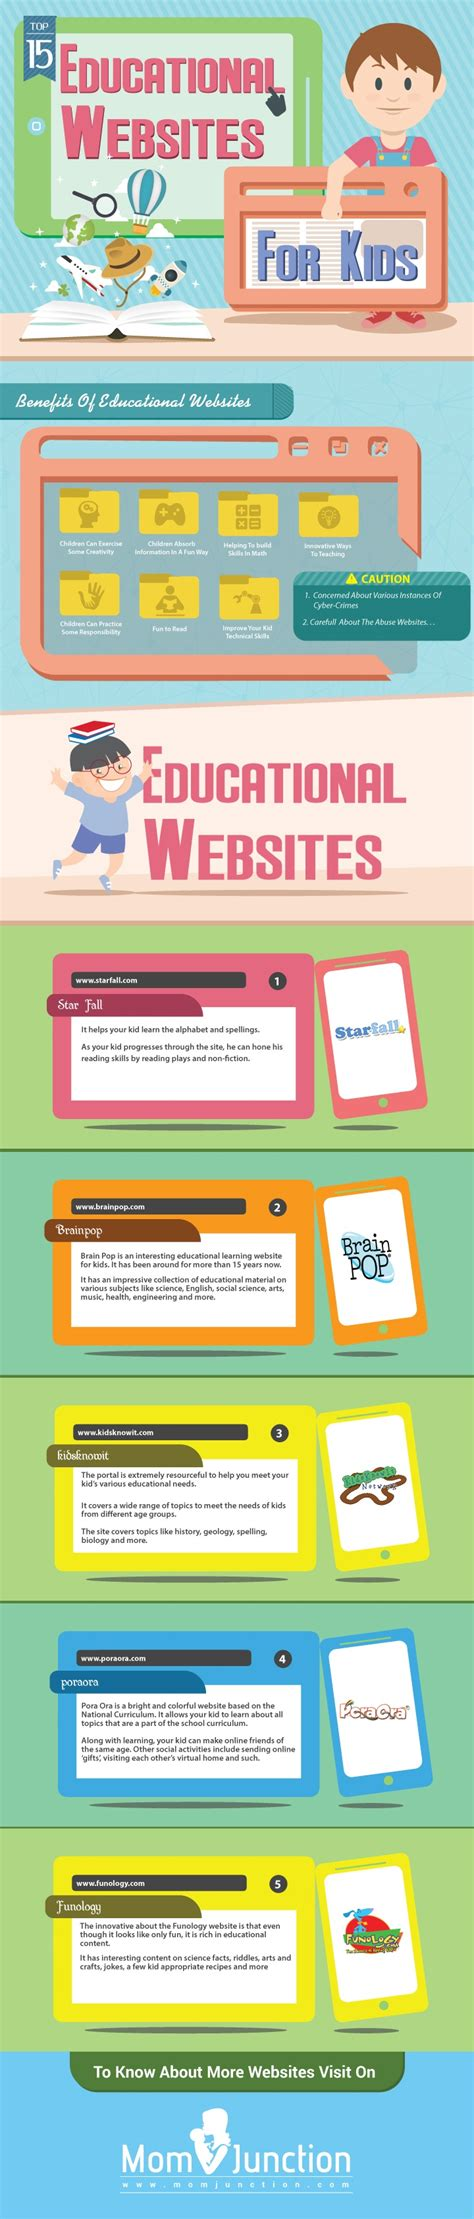 Top 5 Educational Websites For Kids Infographic  Elearning Infographics